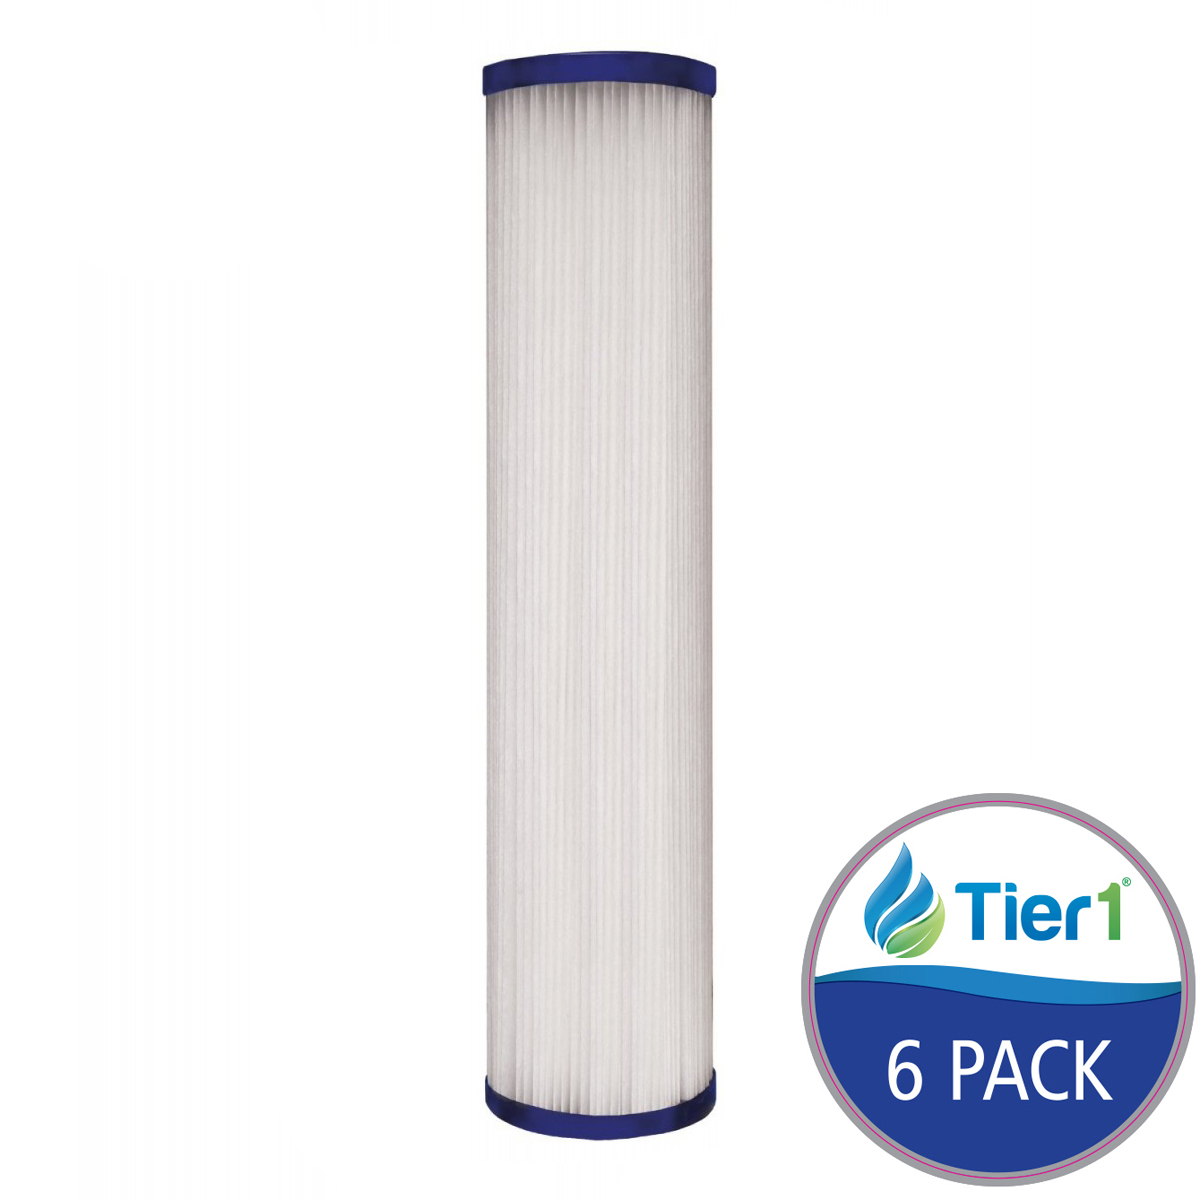 SPC-25-1005 Hydronix Comparable Pleated Sediment Water Filter by Tier1 (6-Pack) TIER1_SPC_25_1005_6_PACK